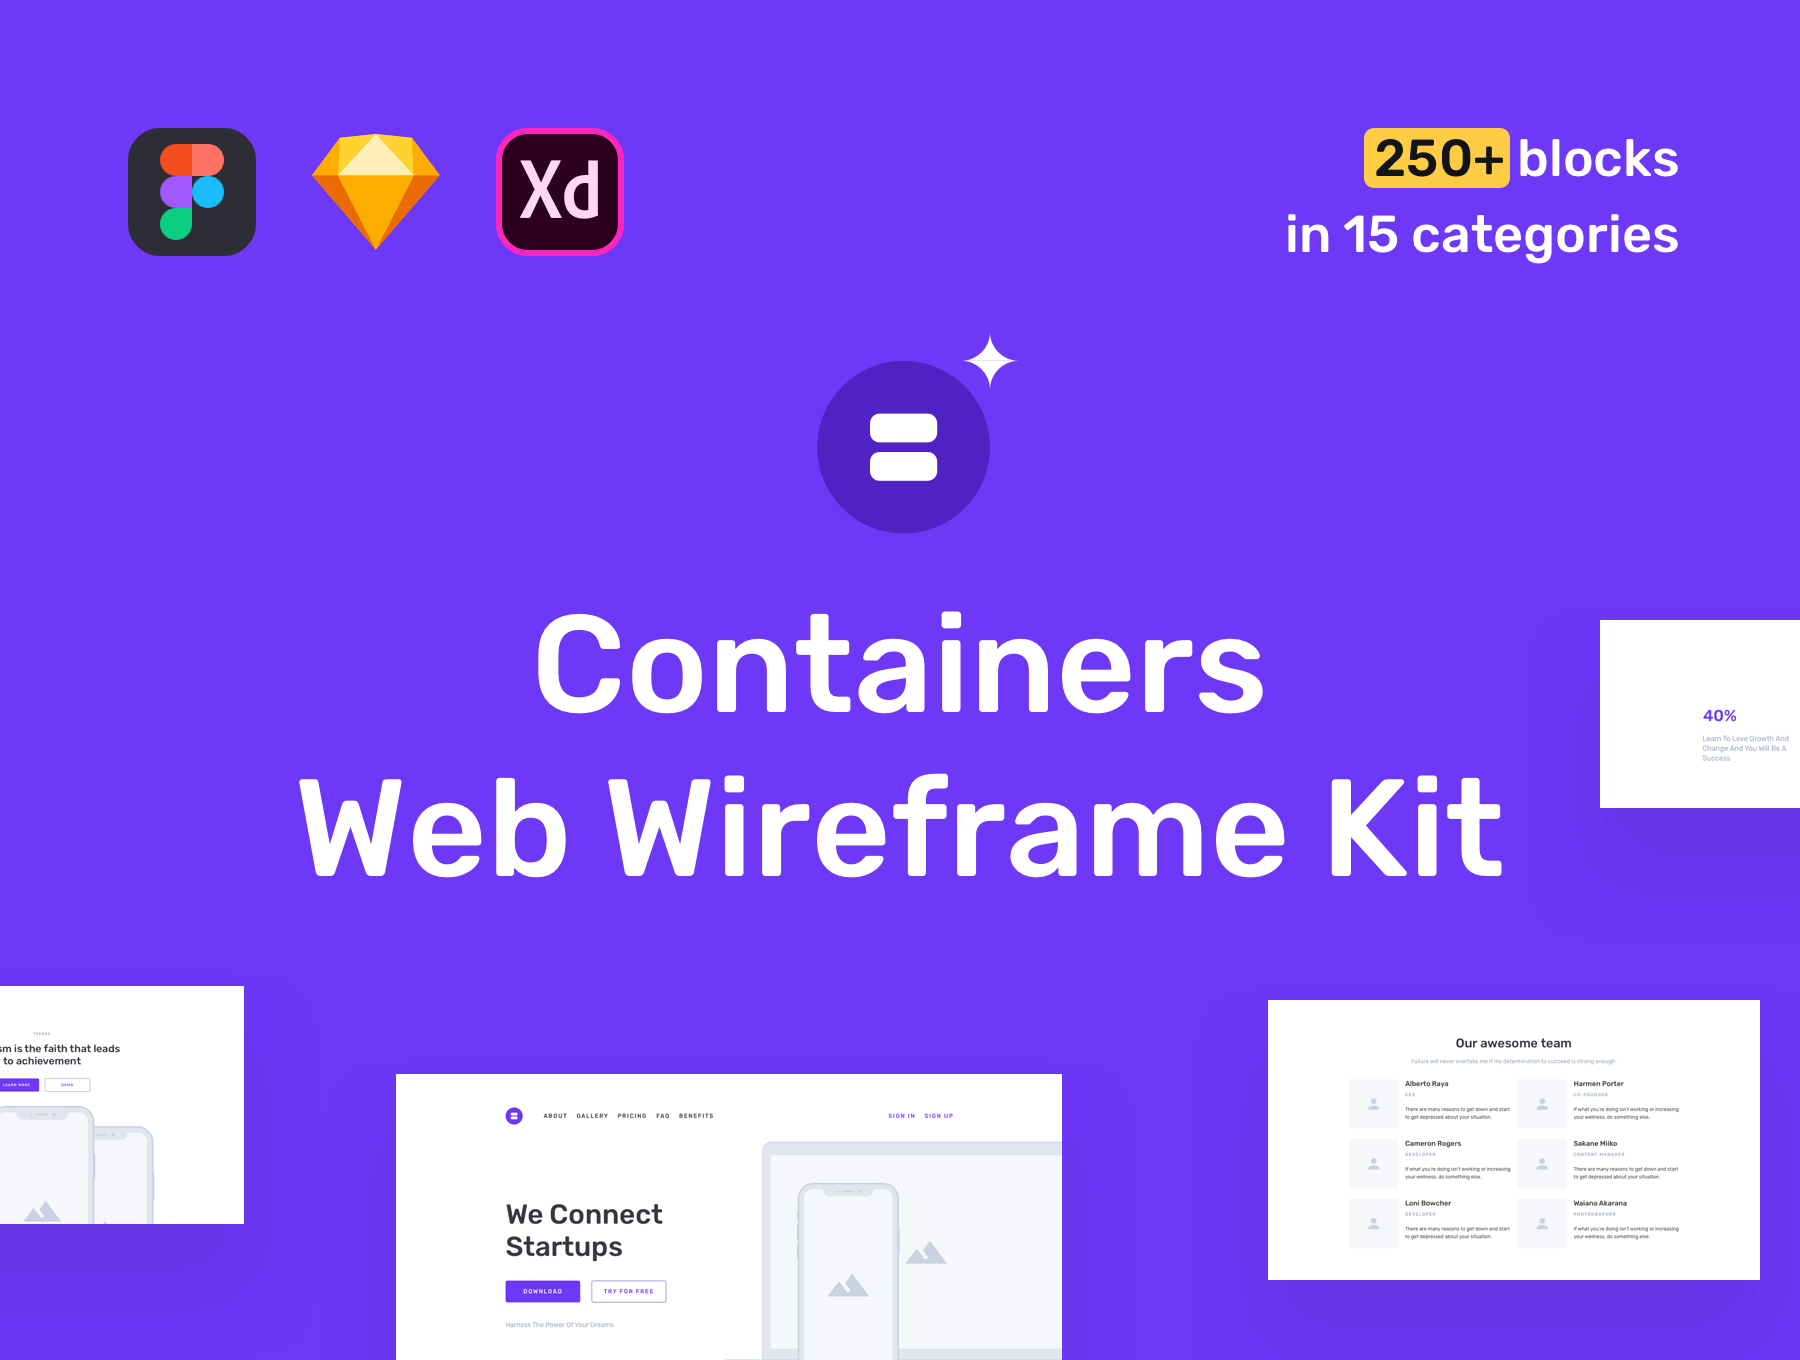 Containers wireframe kit